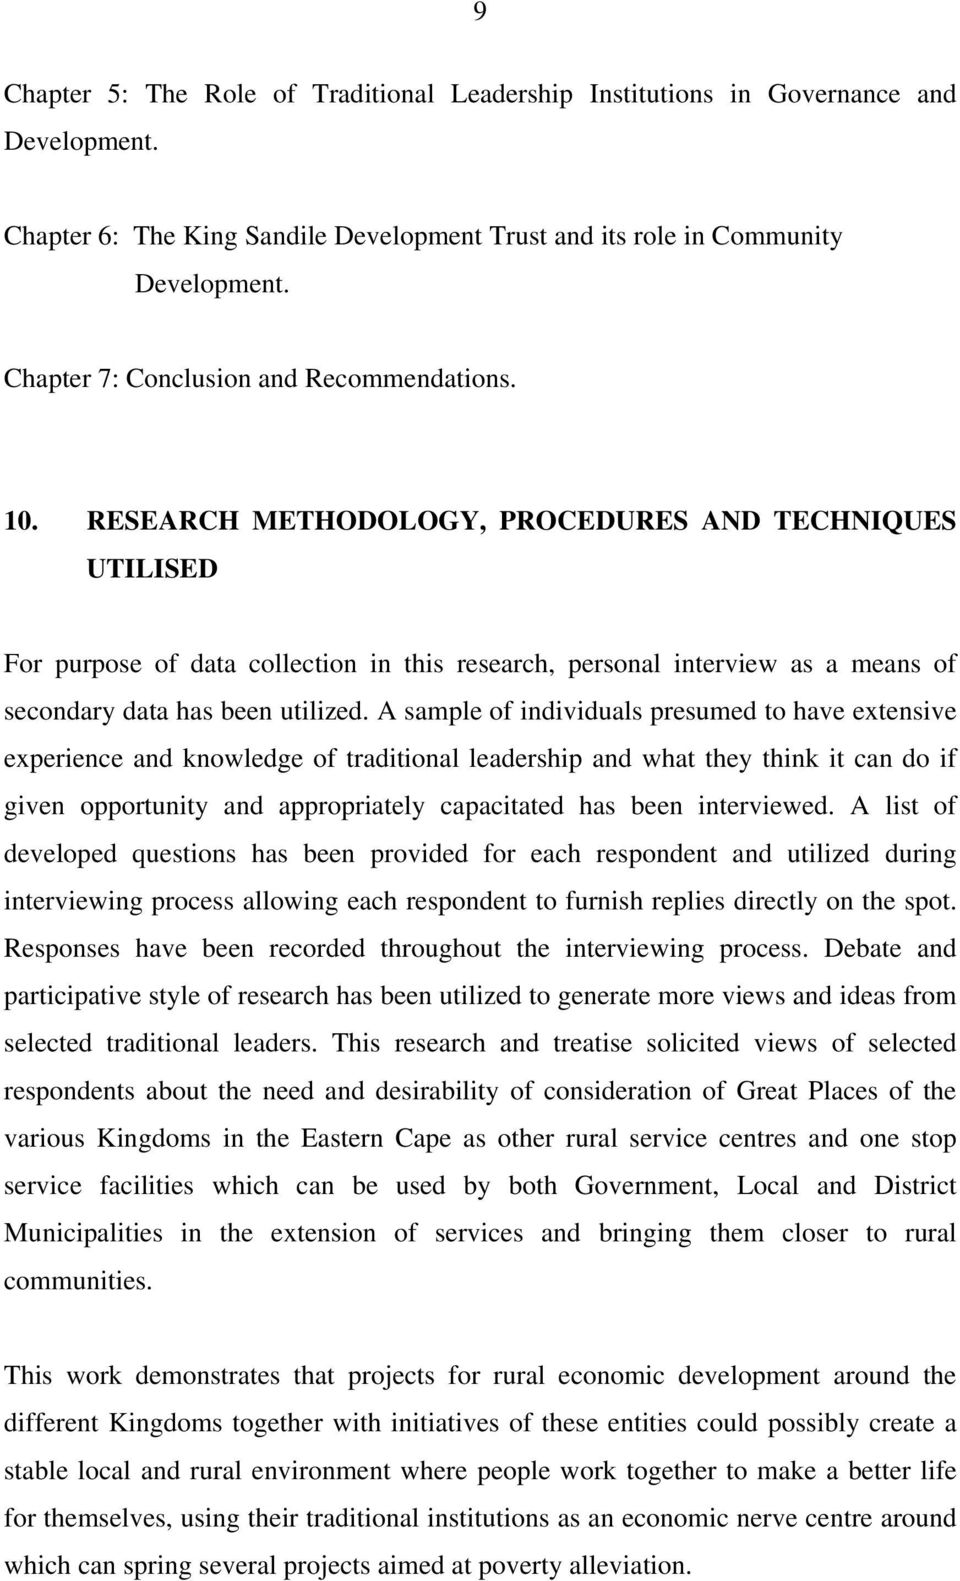 RESEARCH METHODOLOGY, PROCEDURES AND TECHNIQUES UTILISED For purpose of data collection in this research, personal interview as a means of secondary data has been utilized.